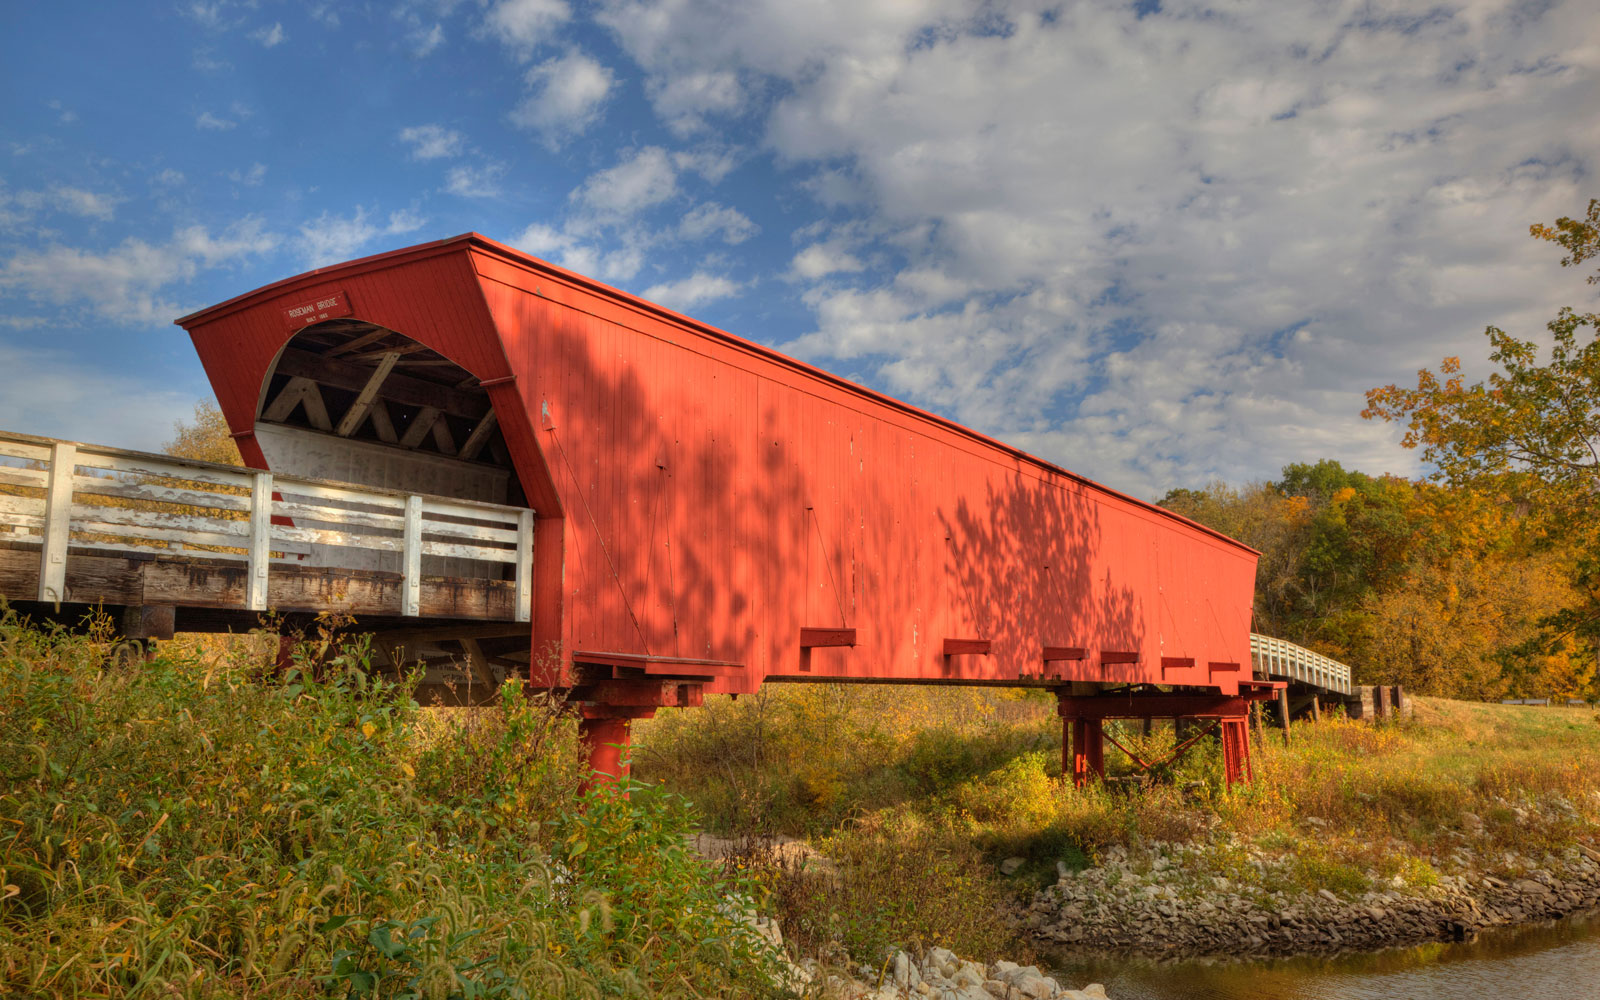 America's Most Beautiful Covered Bridges: Roseman